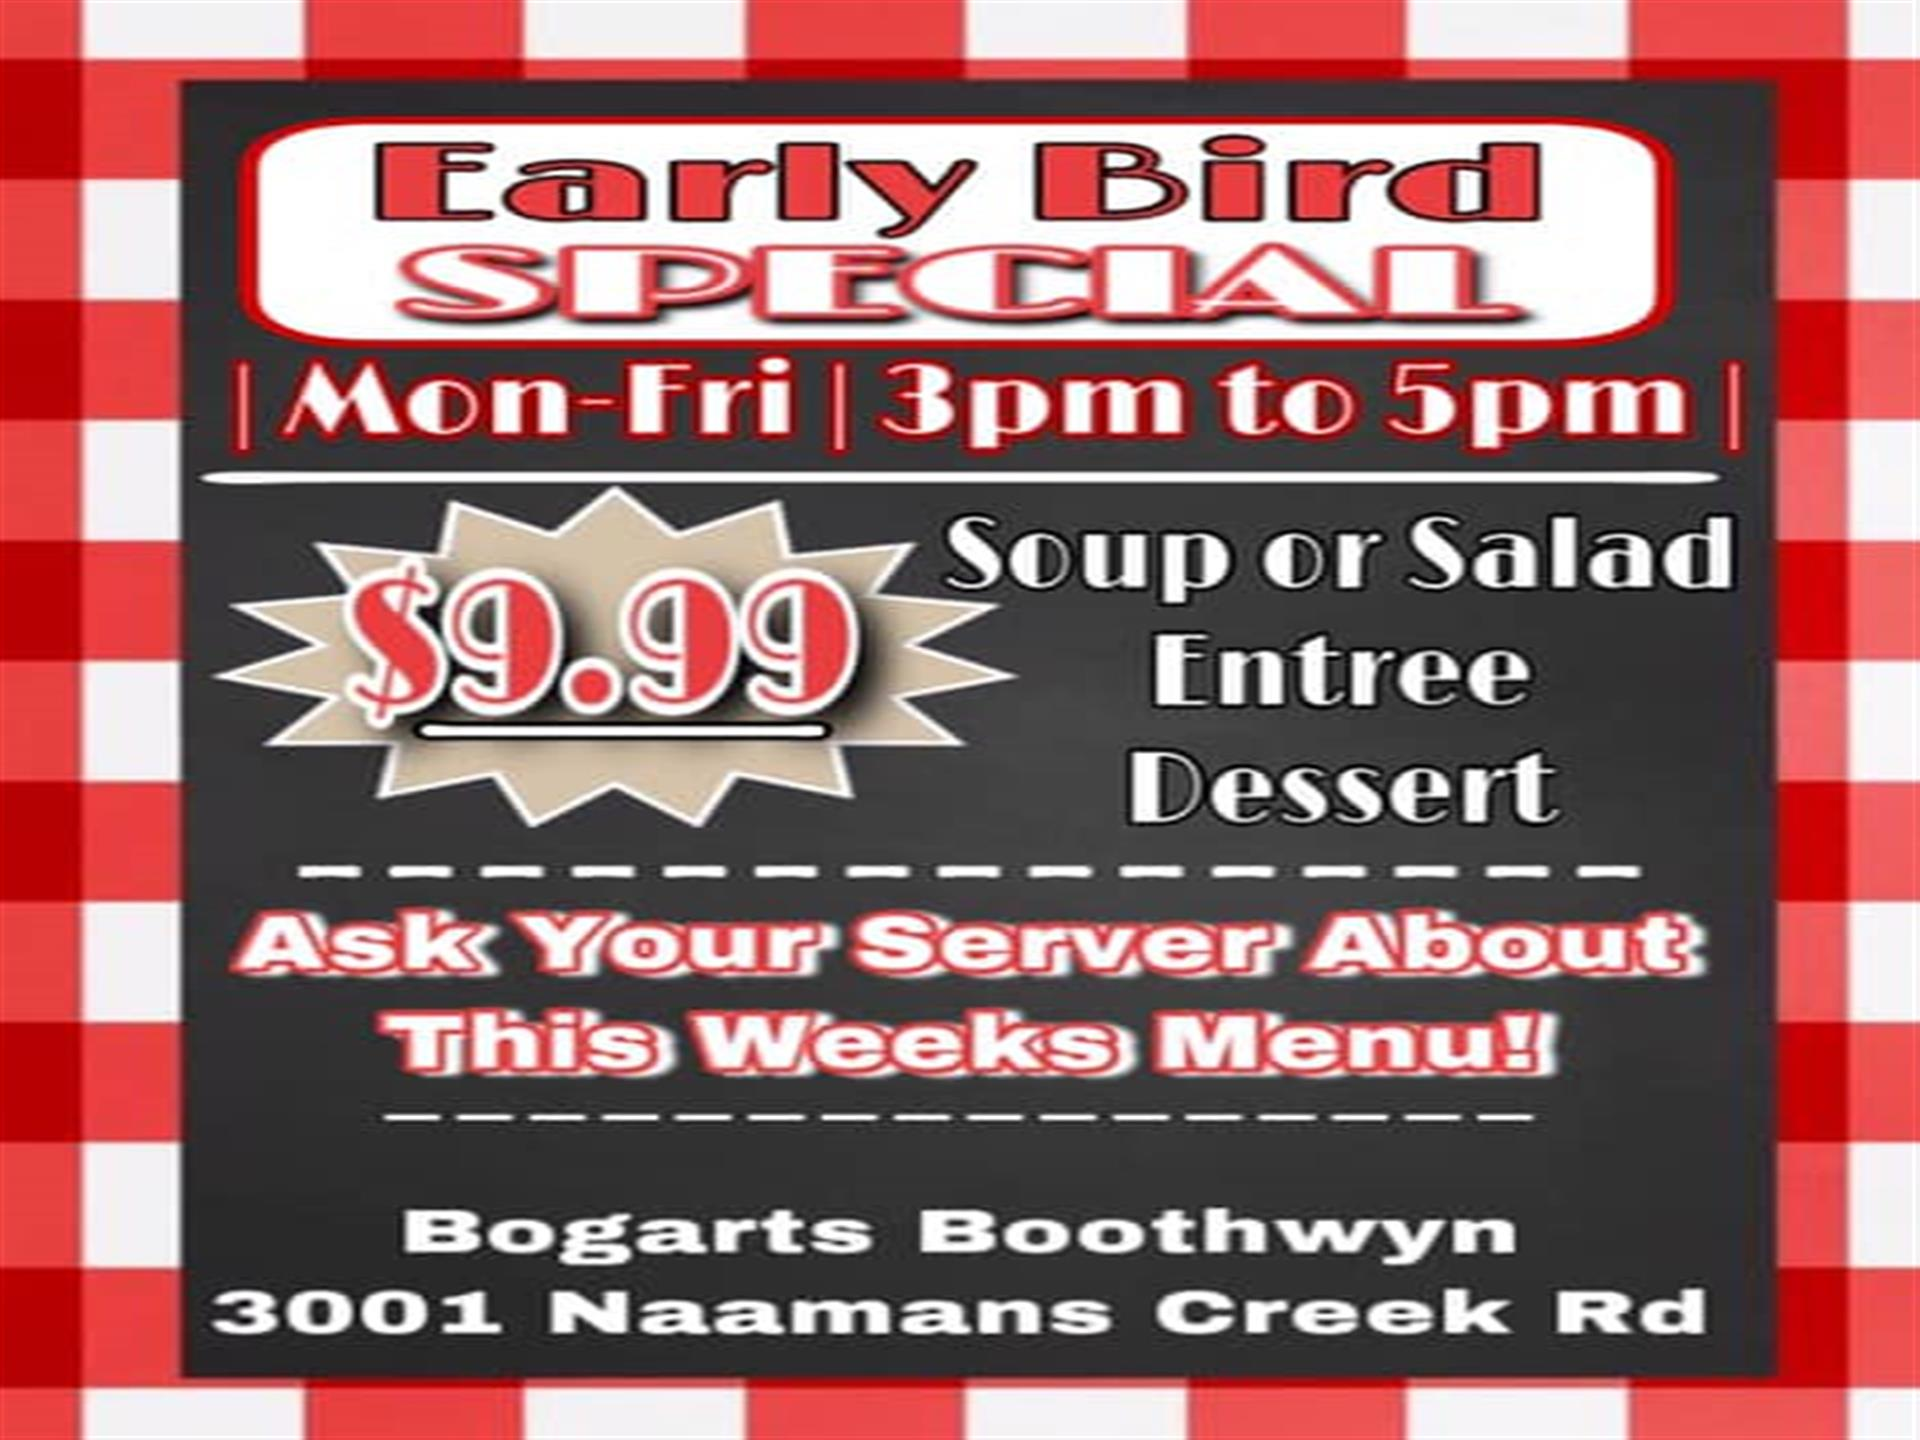 early bird special. mon-fri. 3pm to 5pm. $9.99 soup or salad, entree, dessert. ask your server about this weeks menu. Bogarts boothwyn. 3001 Naamans Creek Rd